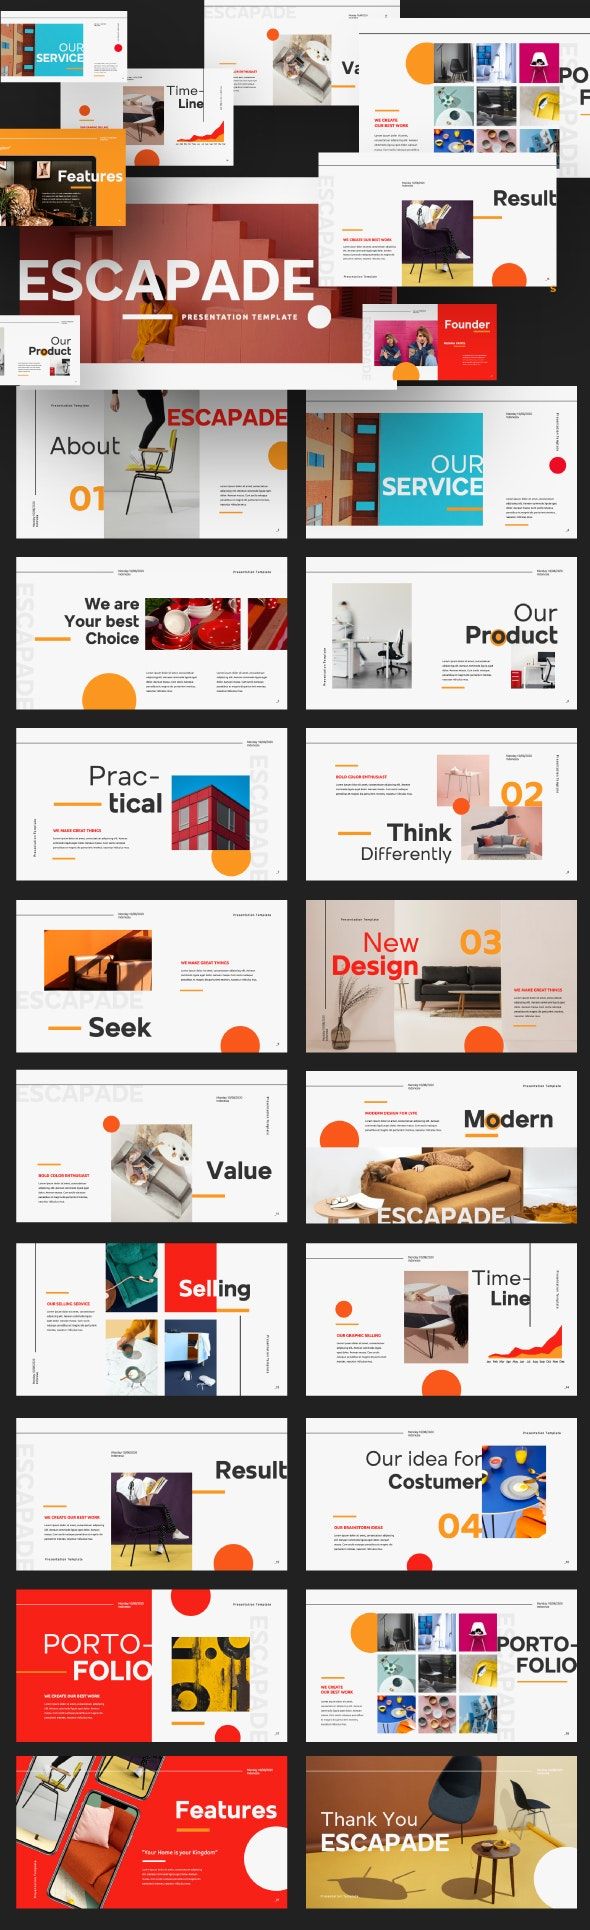 Escapade Powerpoint Presentation Template - Creative PowerPoint Templates